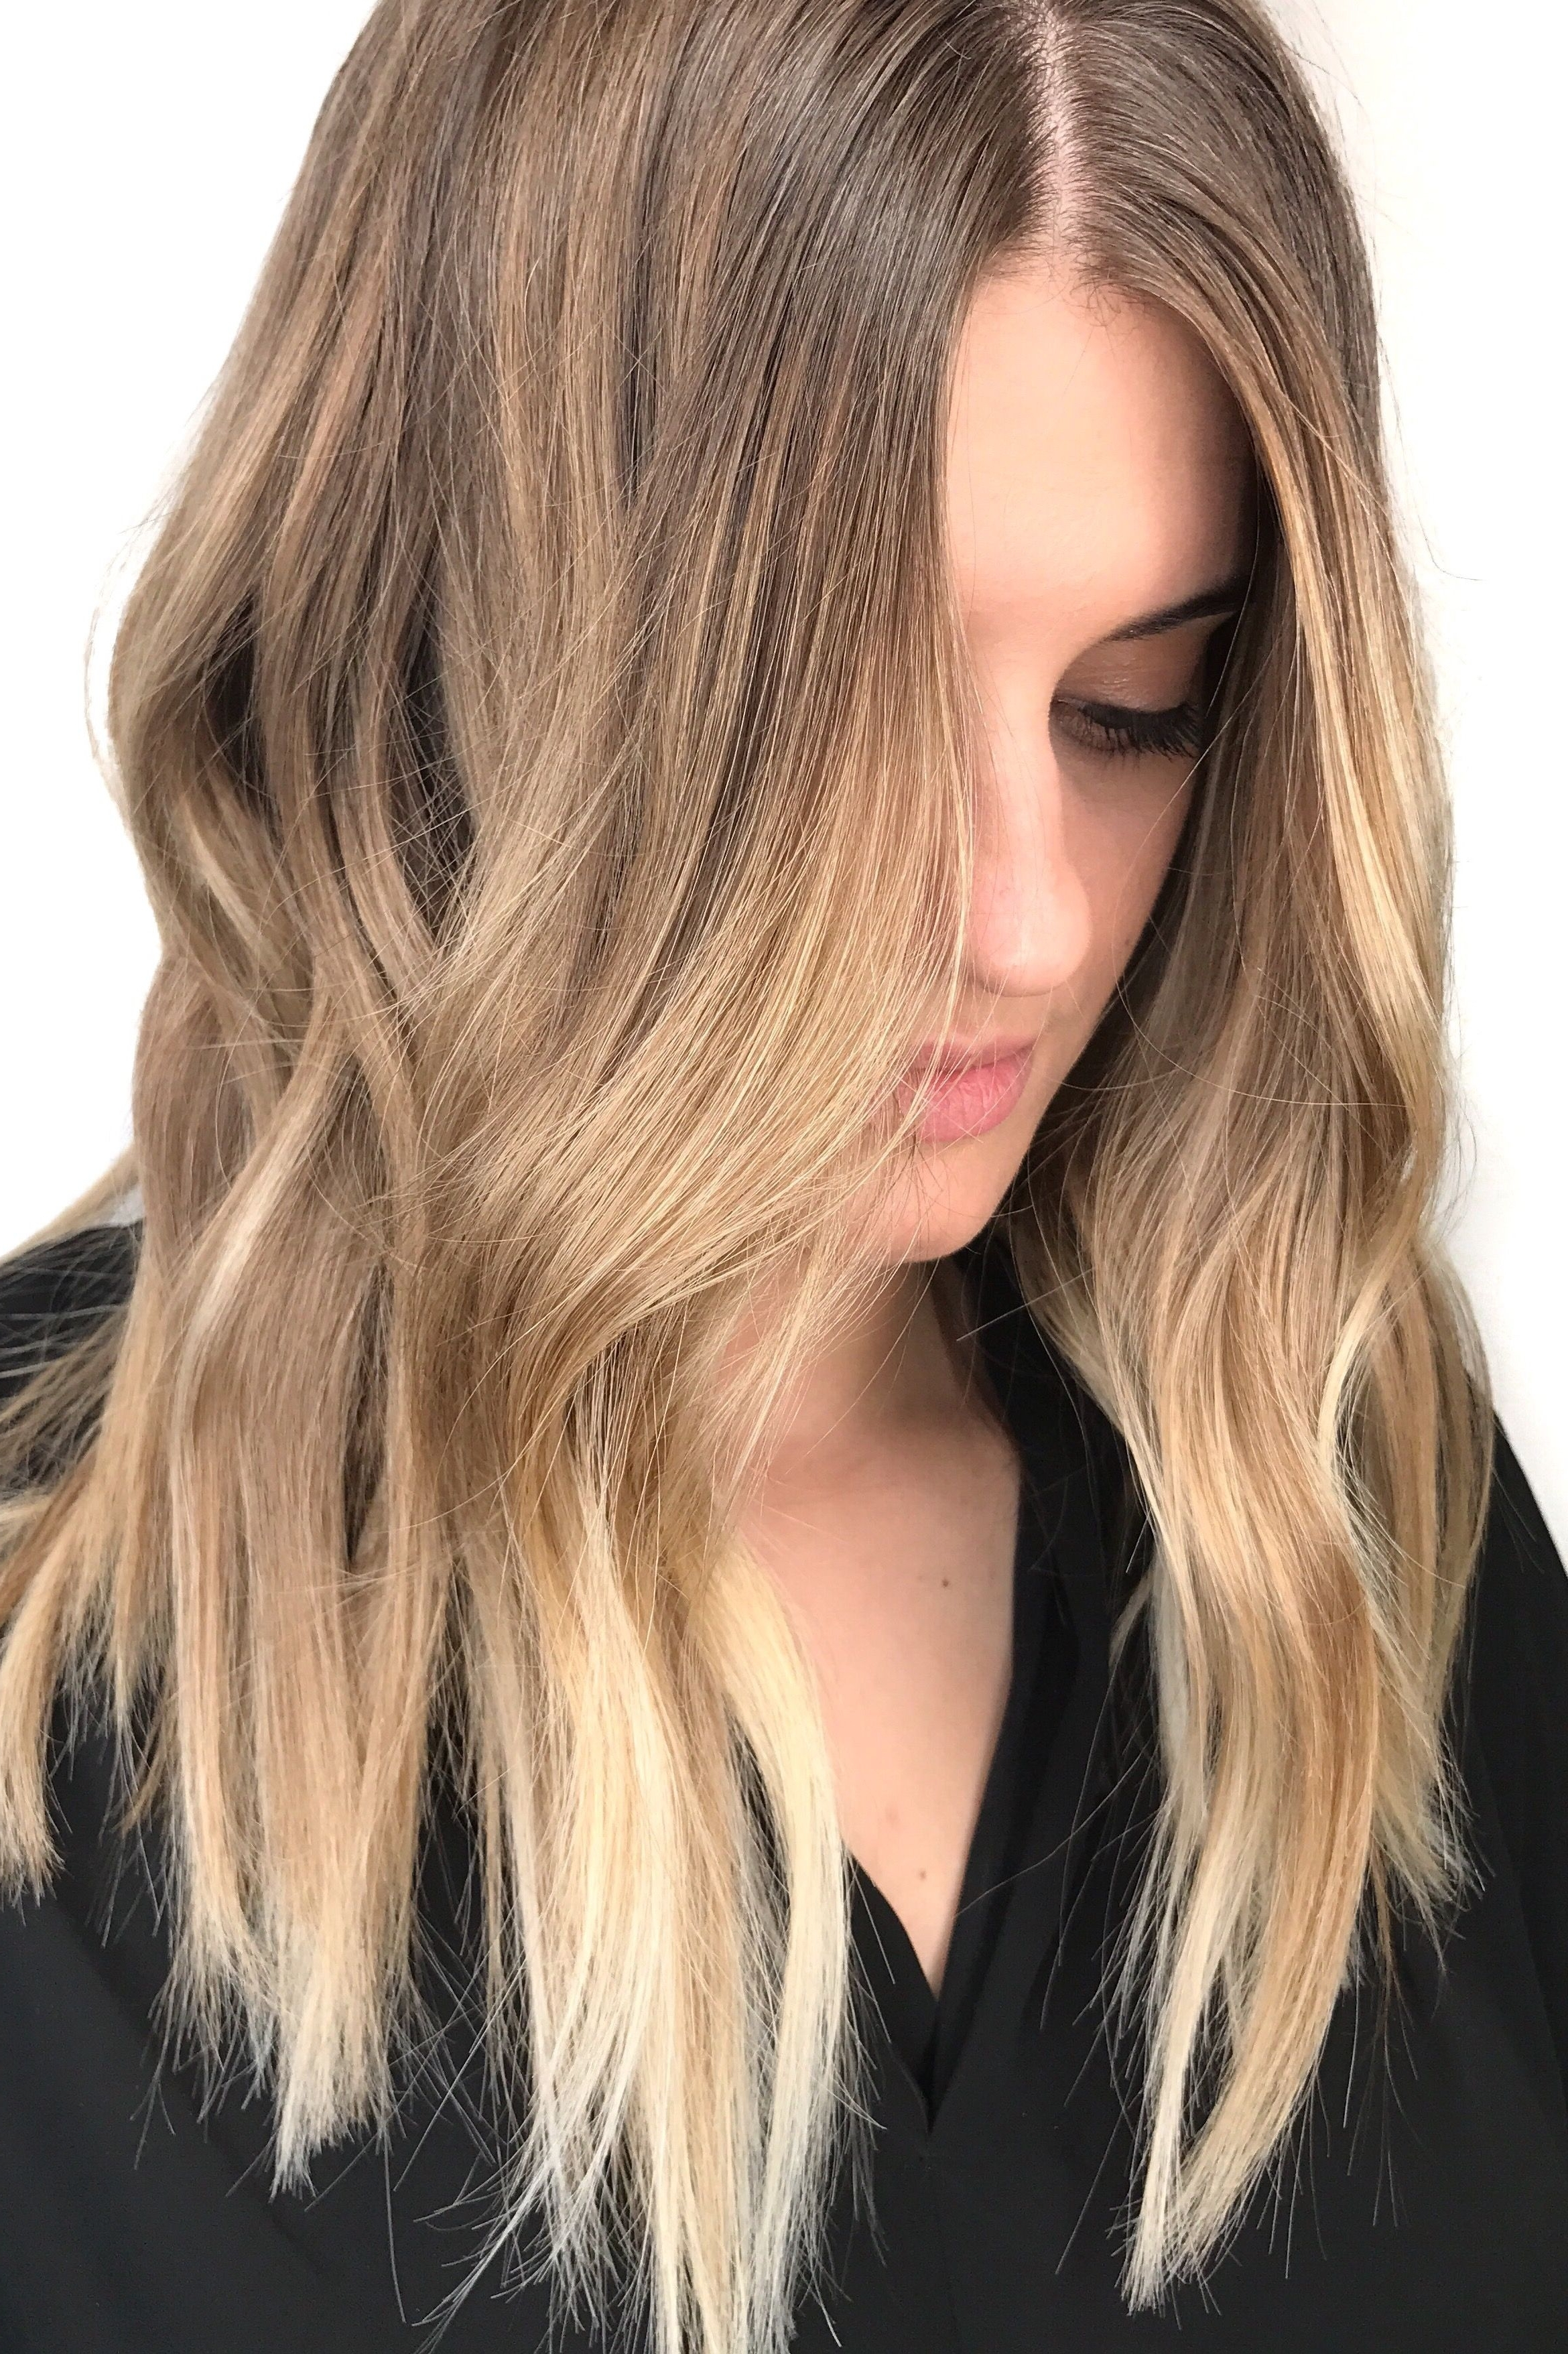 Blonde Balayage ; Natural Blonde Highlights ; Sun Kissed Hair Color Within Widely Used Sun Kissed Blonde Hairstyles With Sweeping Layers (View 4 of 20)